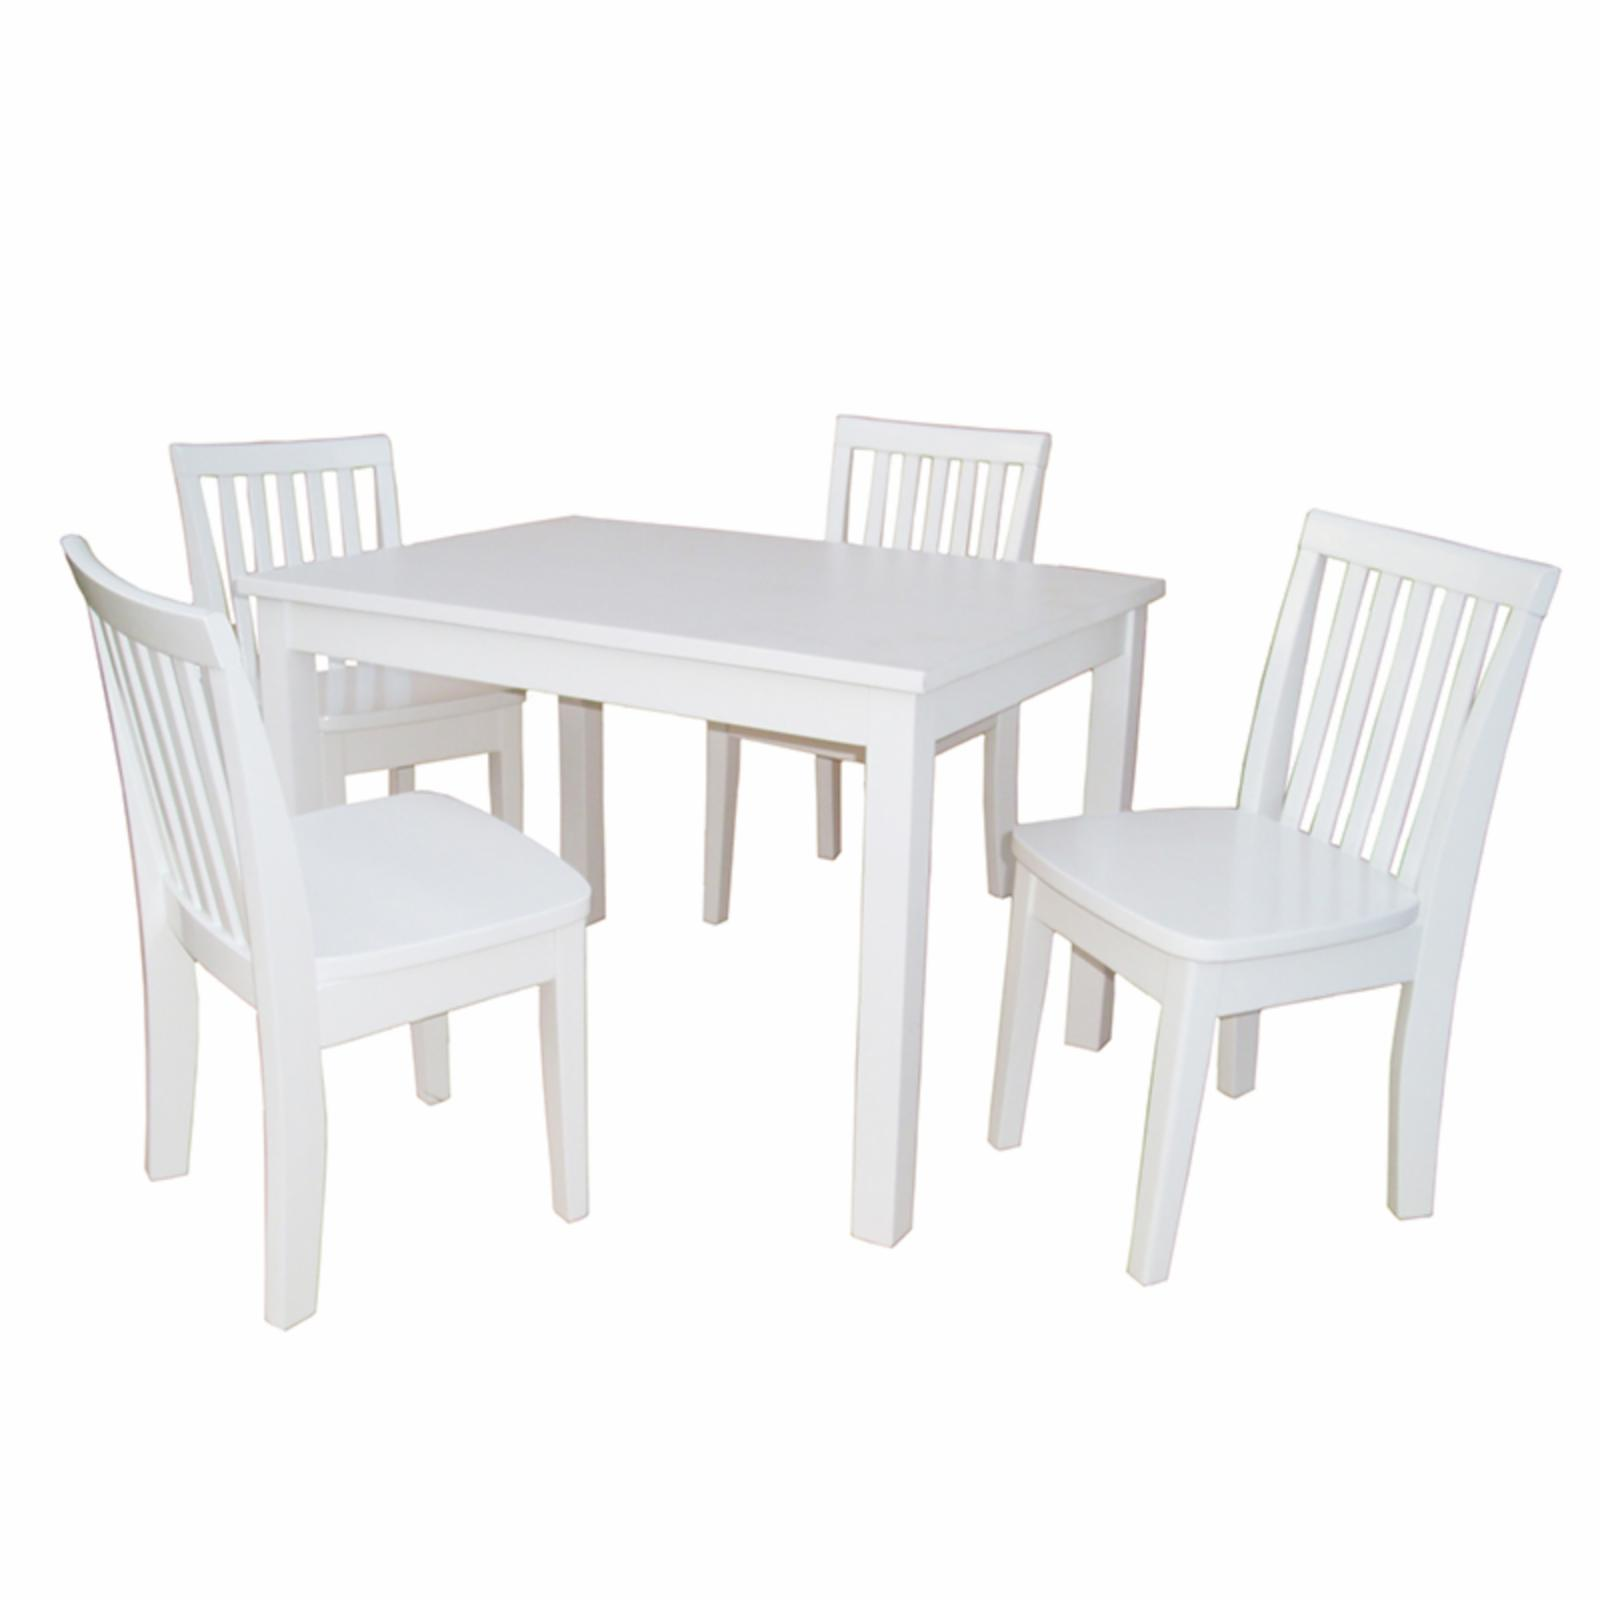 International Concepts Mission Juvenile Table and Chairs Set - White - K08-2532-263-4